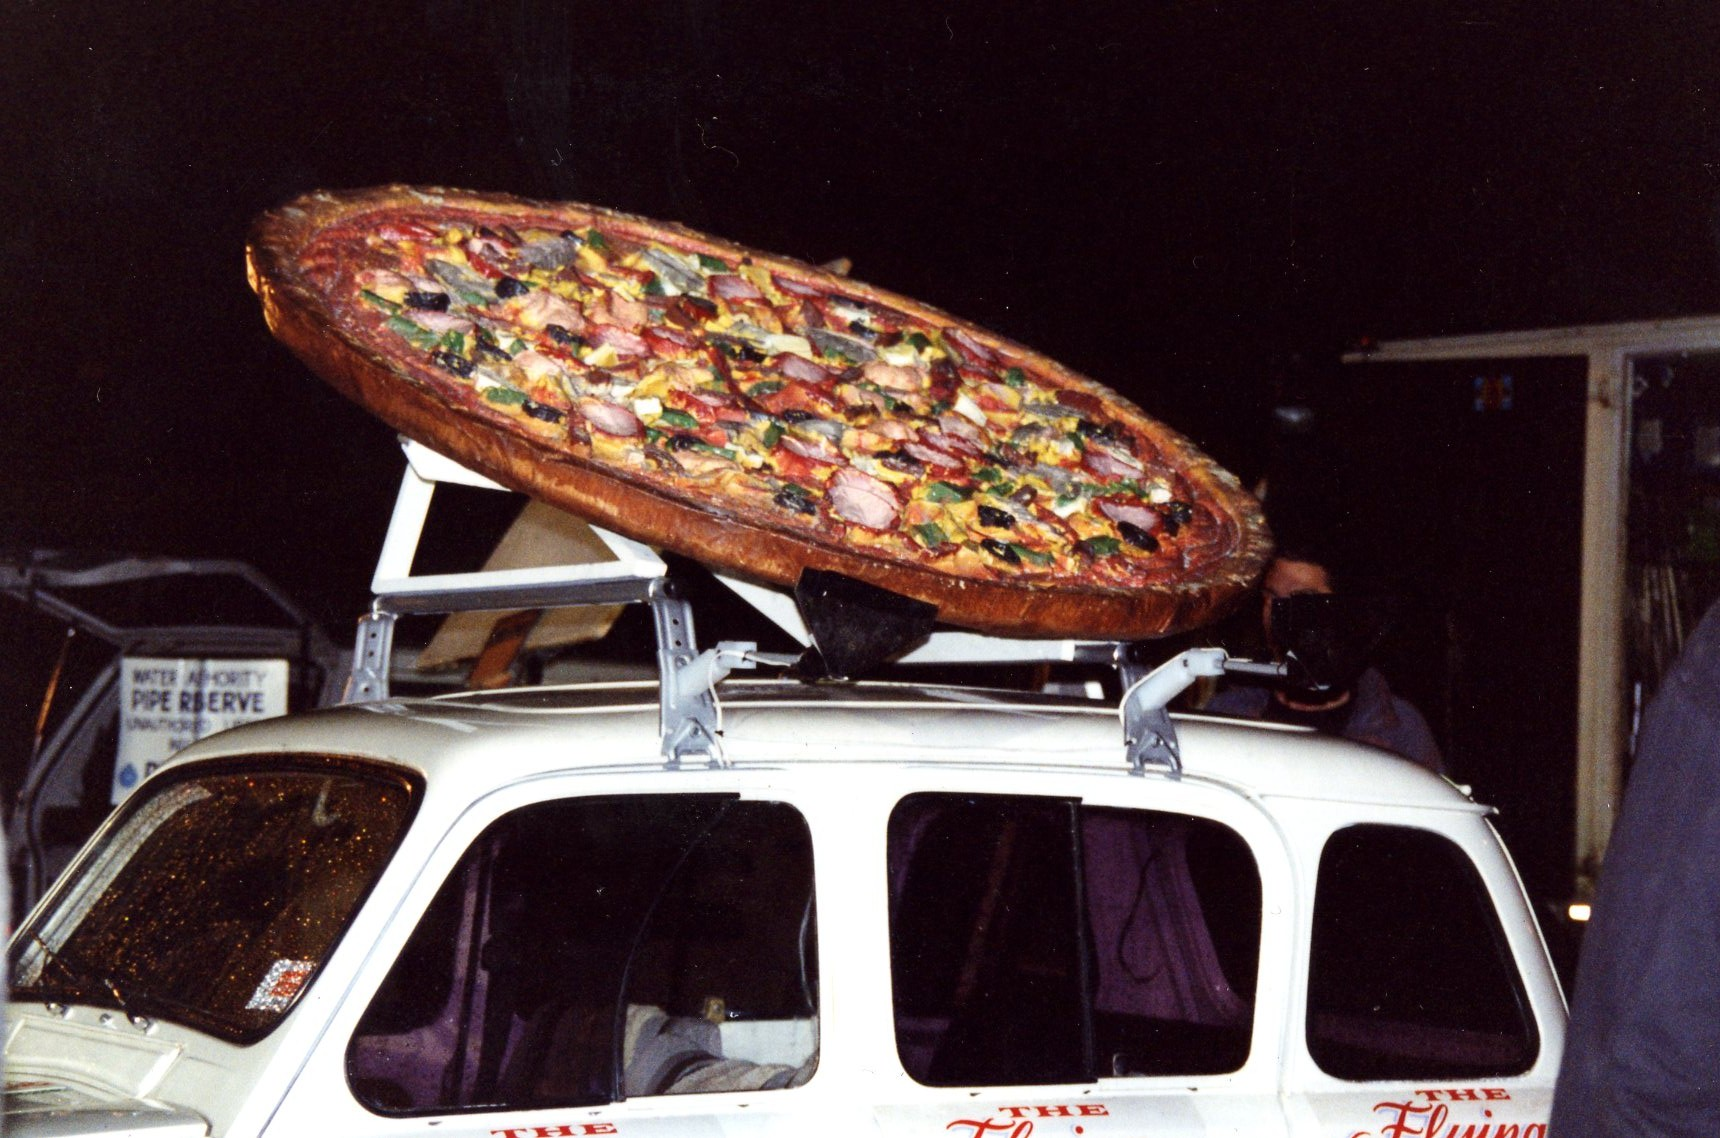 This pizza could fly off the roof of the car !.jpg